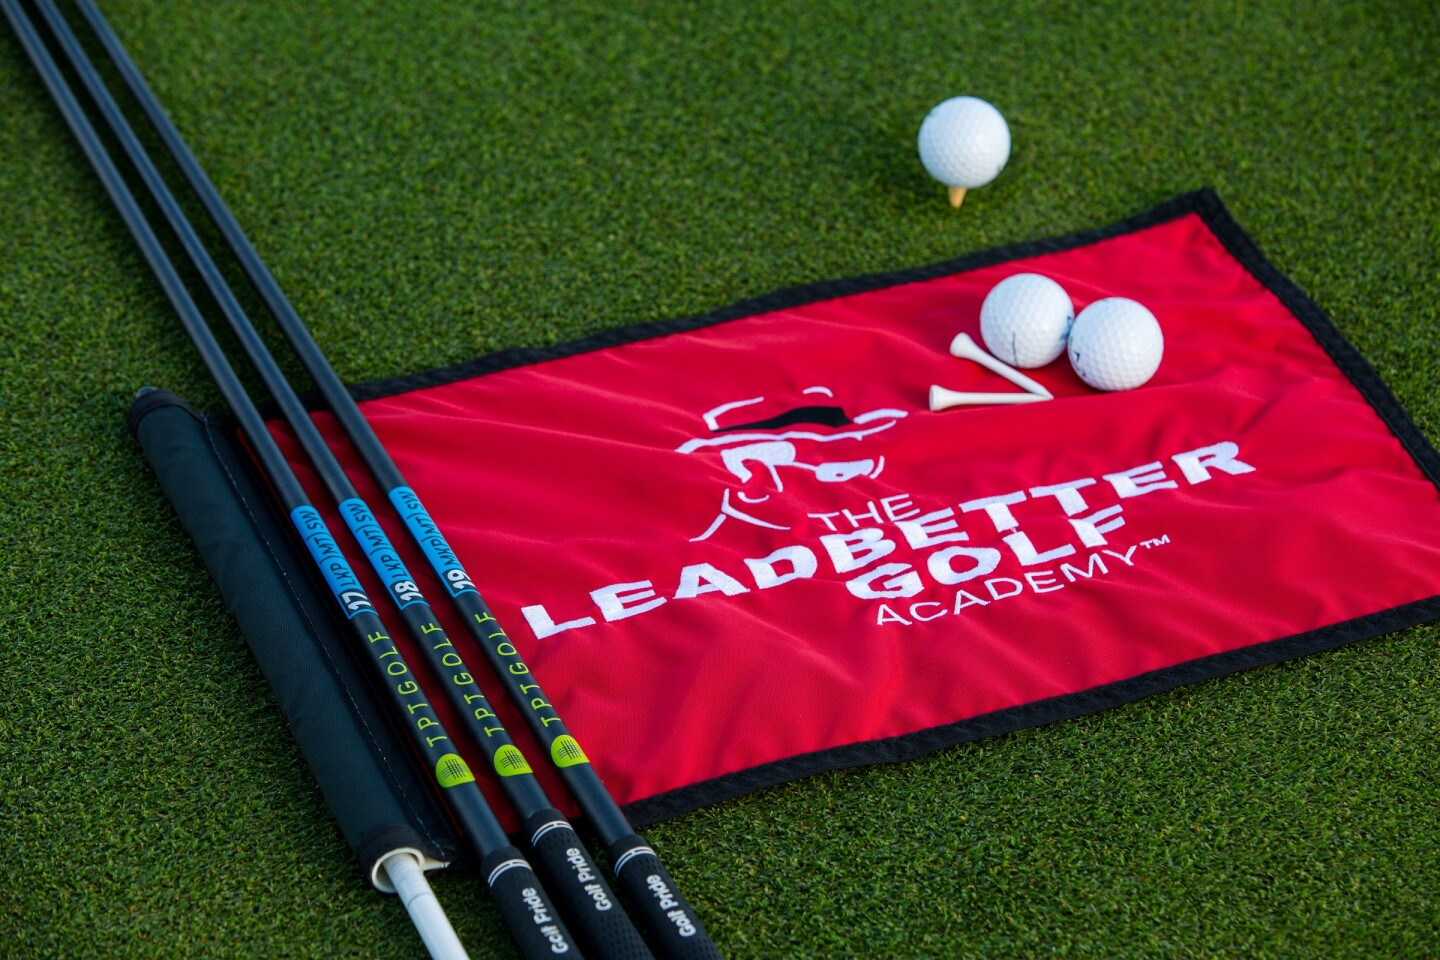 Leadbetter Golf Academy gear